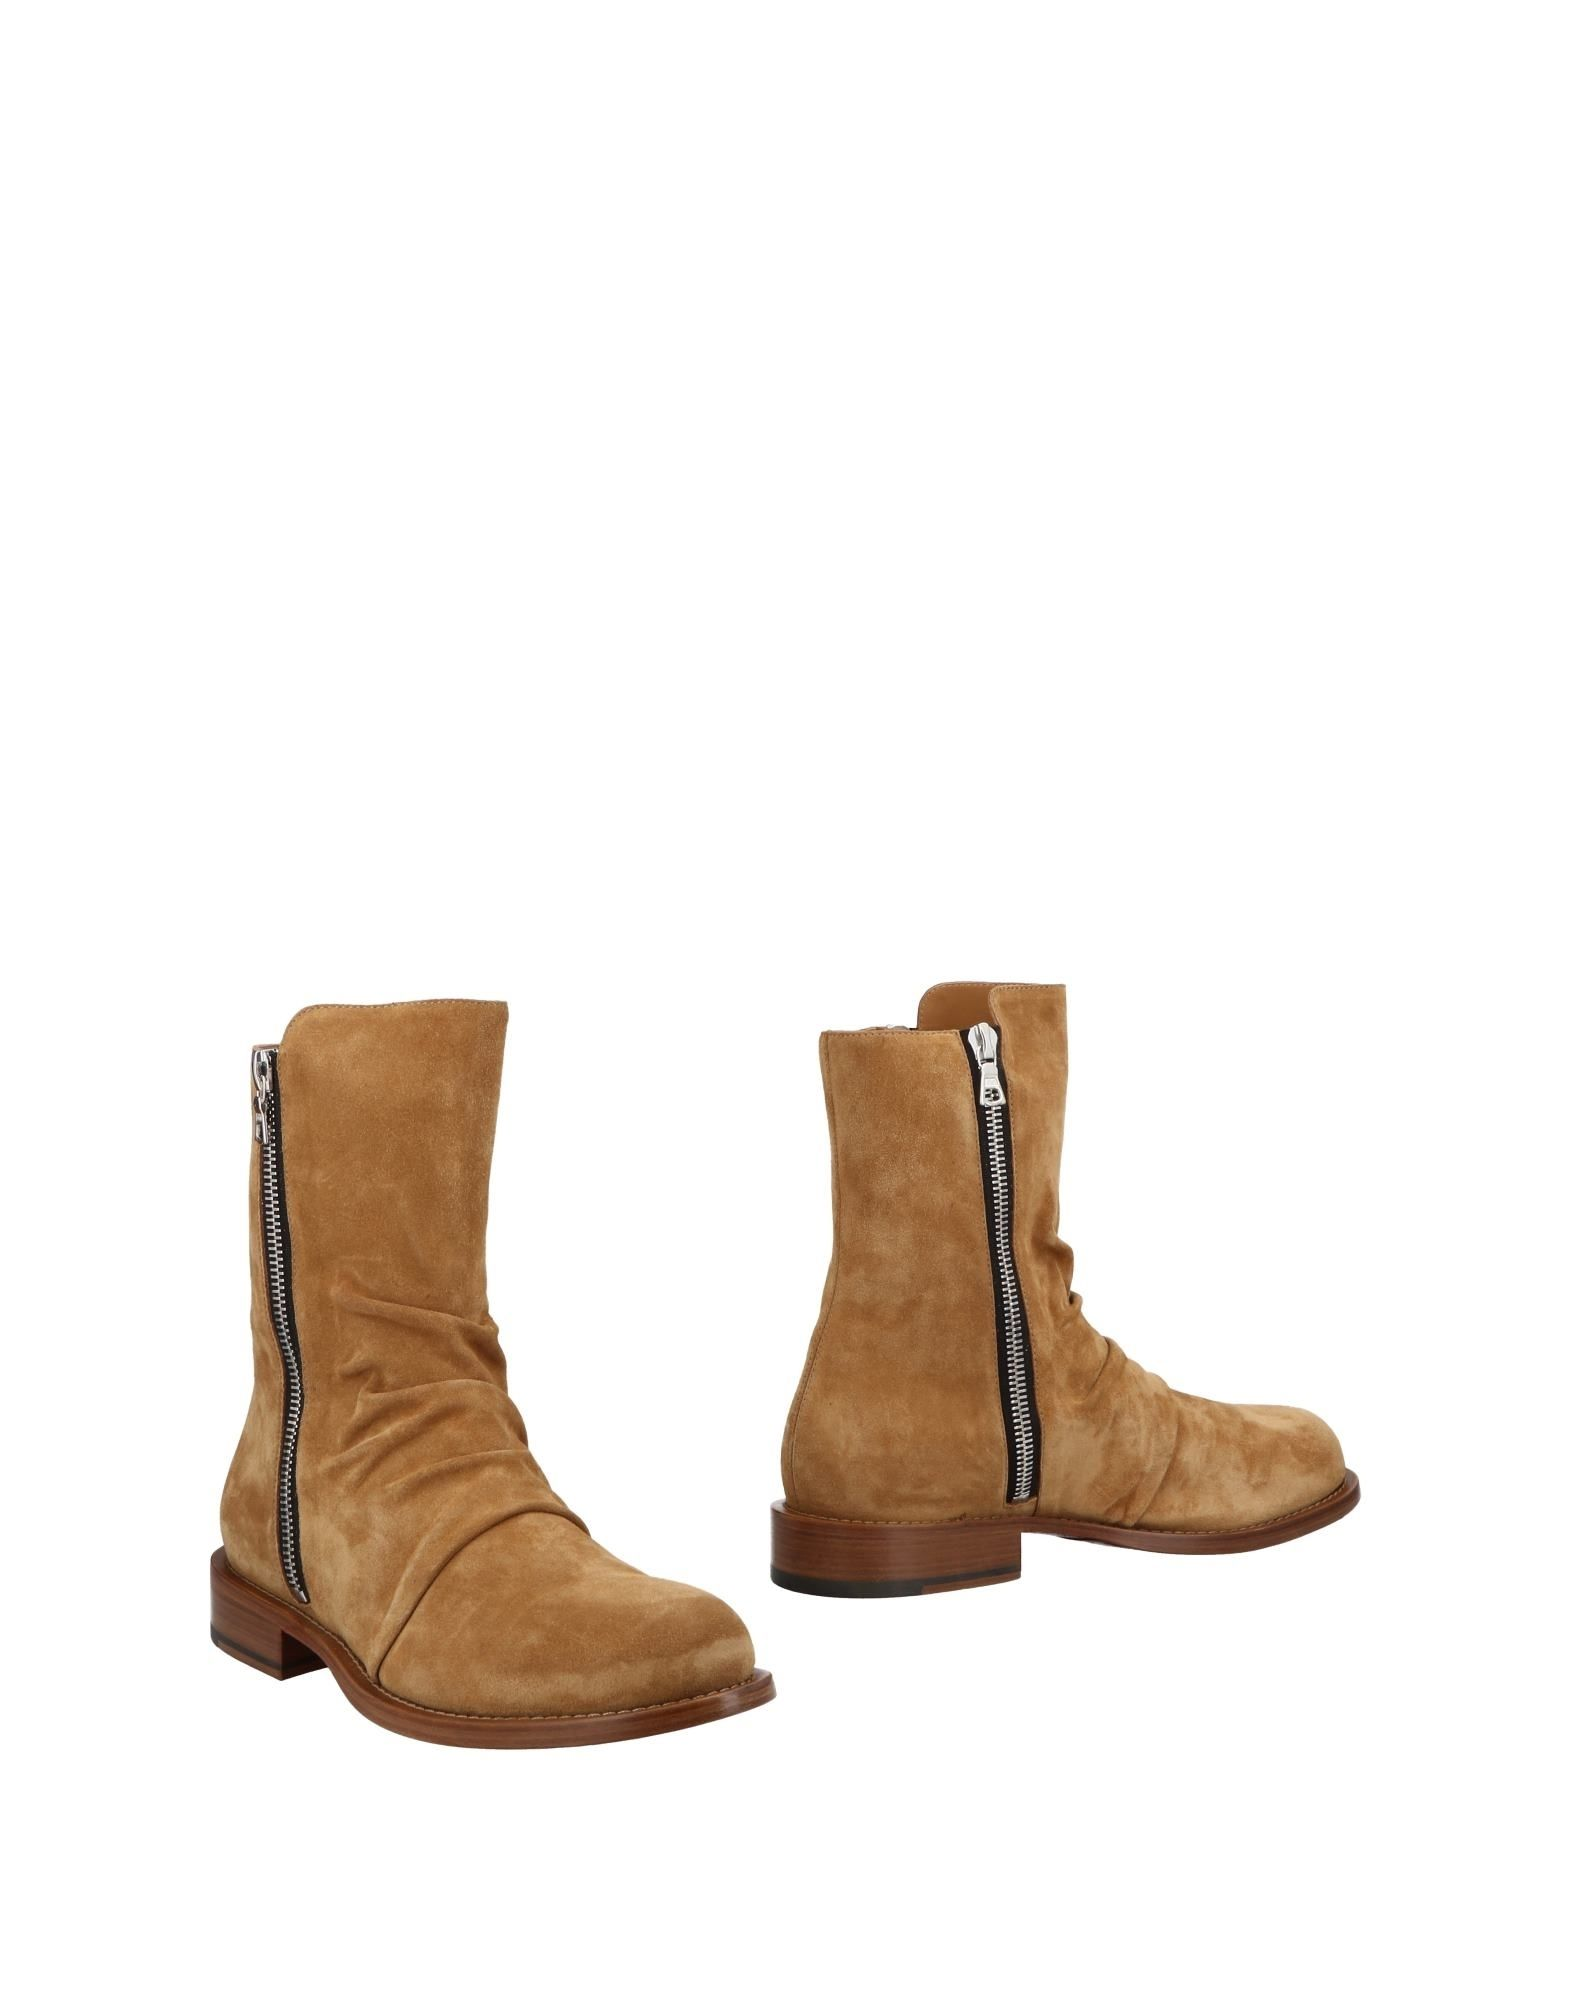 Amiri Boots Boots - Men Amiri Boots Amiri online on  United Kingdom - 11487101KI 6fdcd8